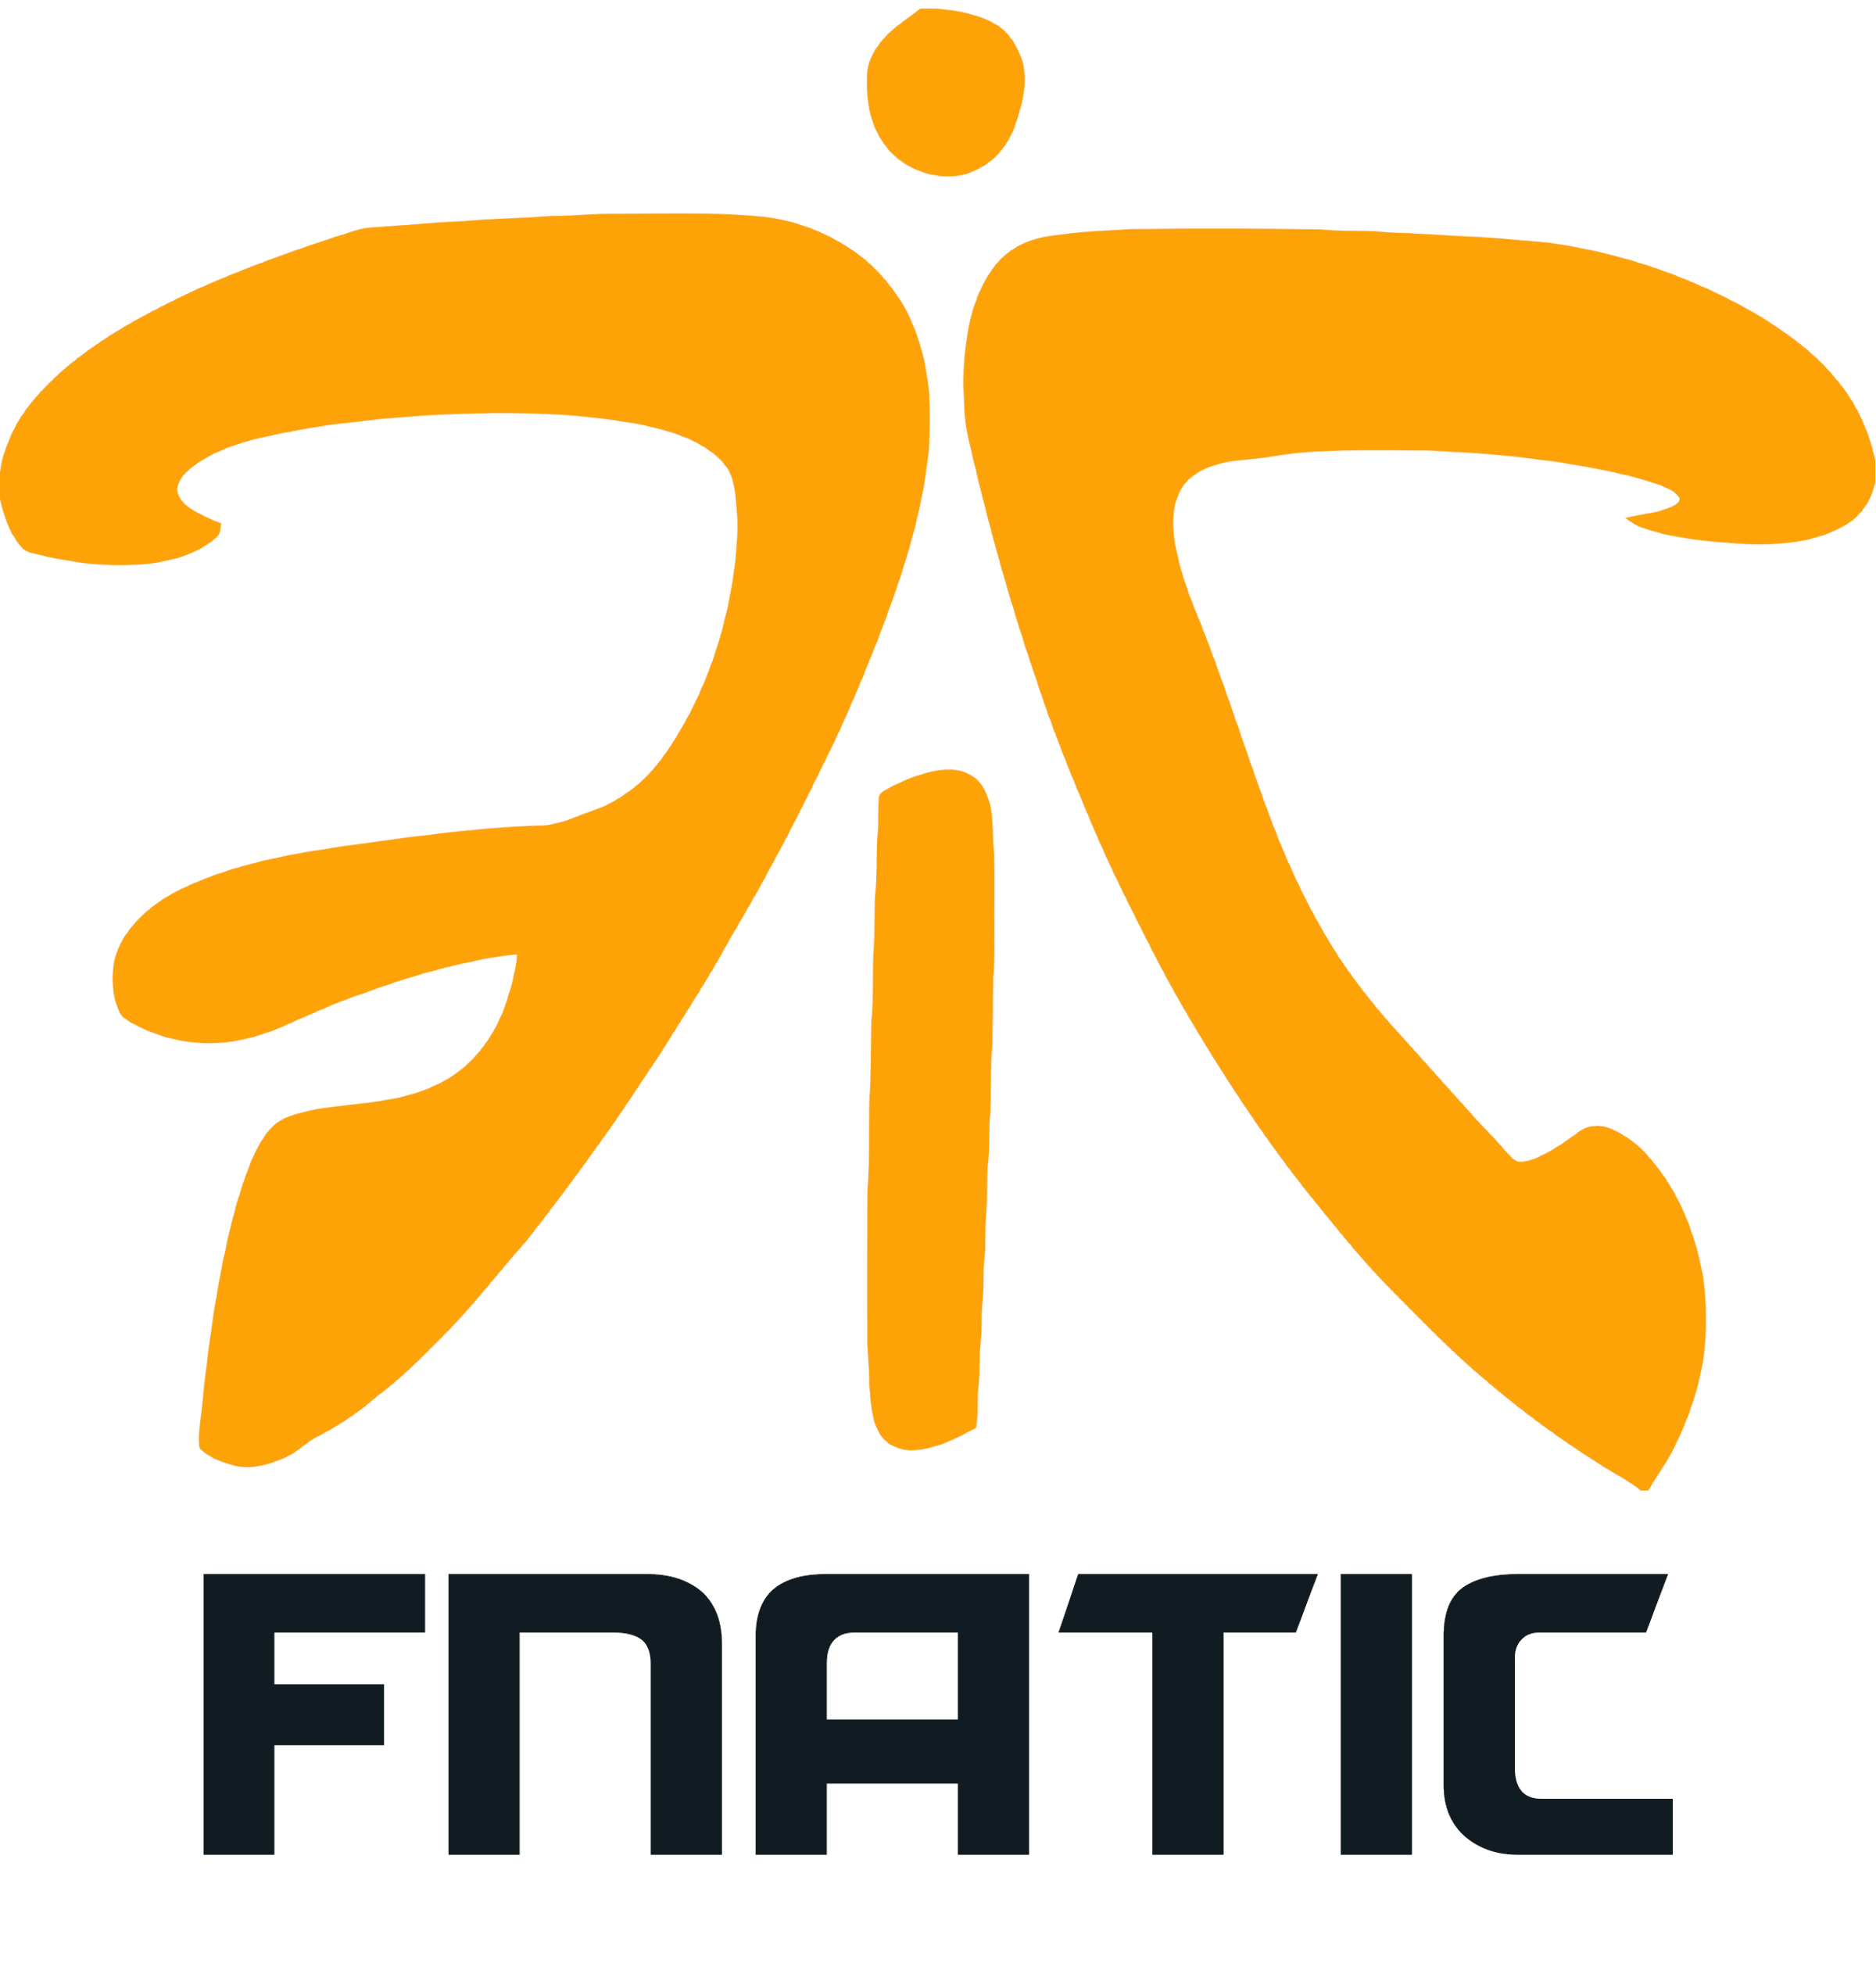 Fnatic – Logos Download